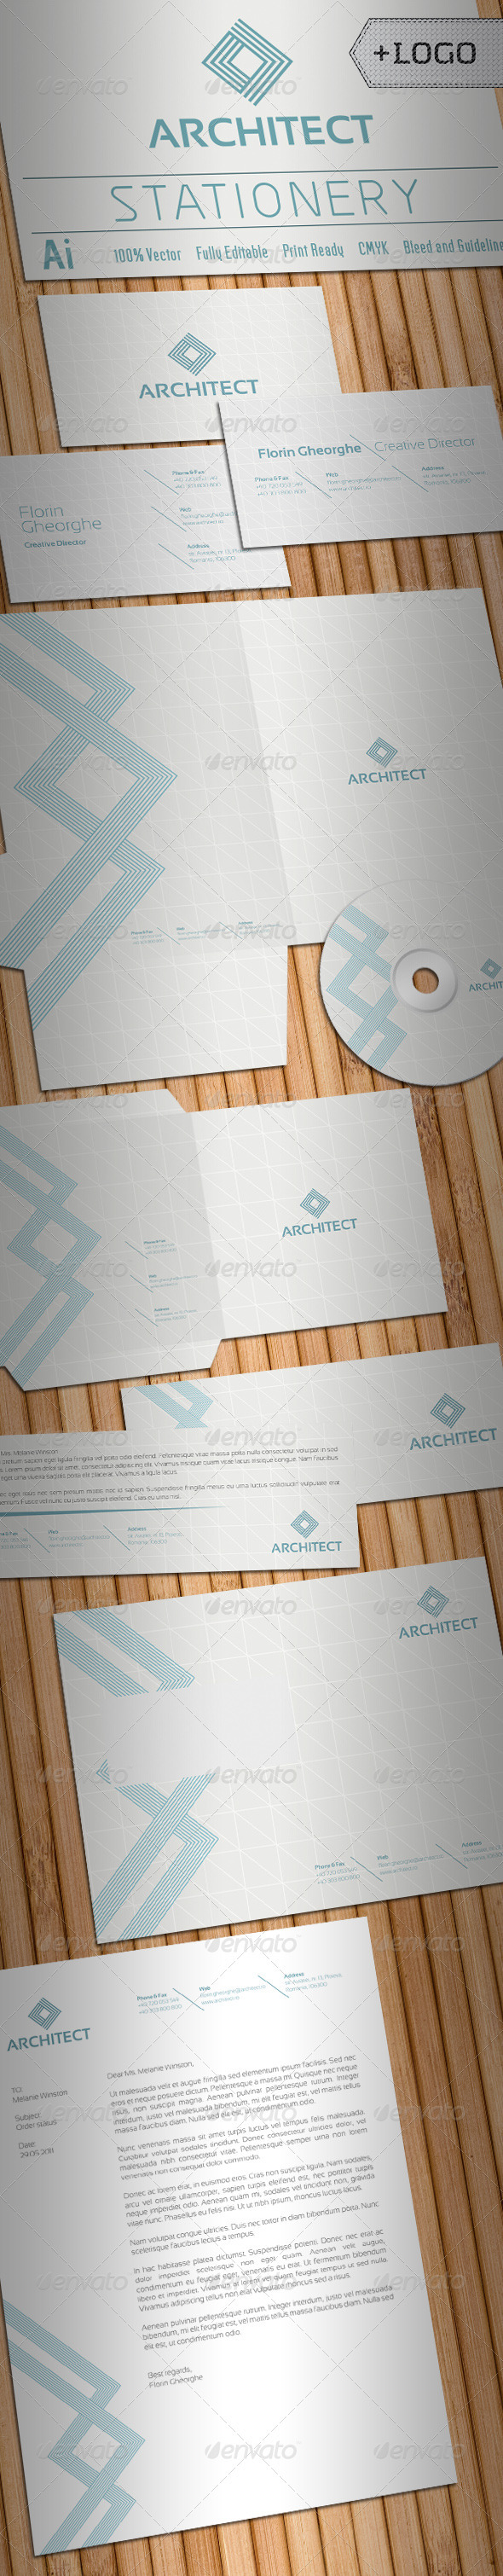 GraphicRiver Architect Stationery 1286785